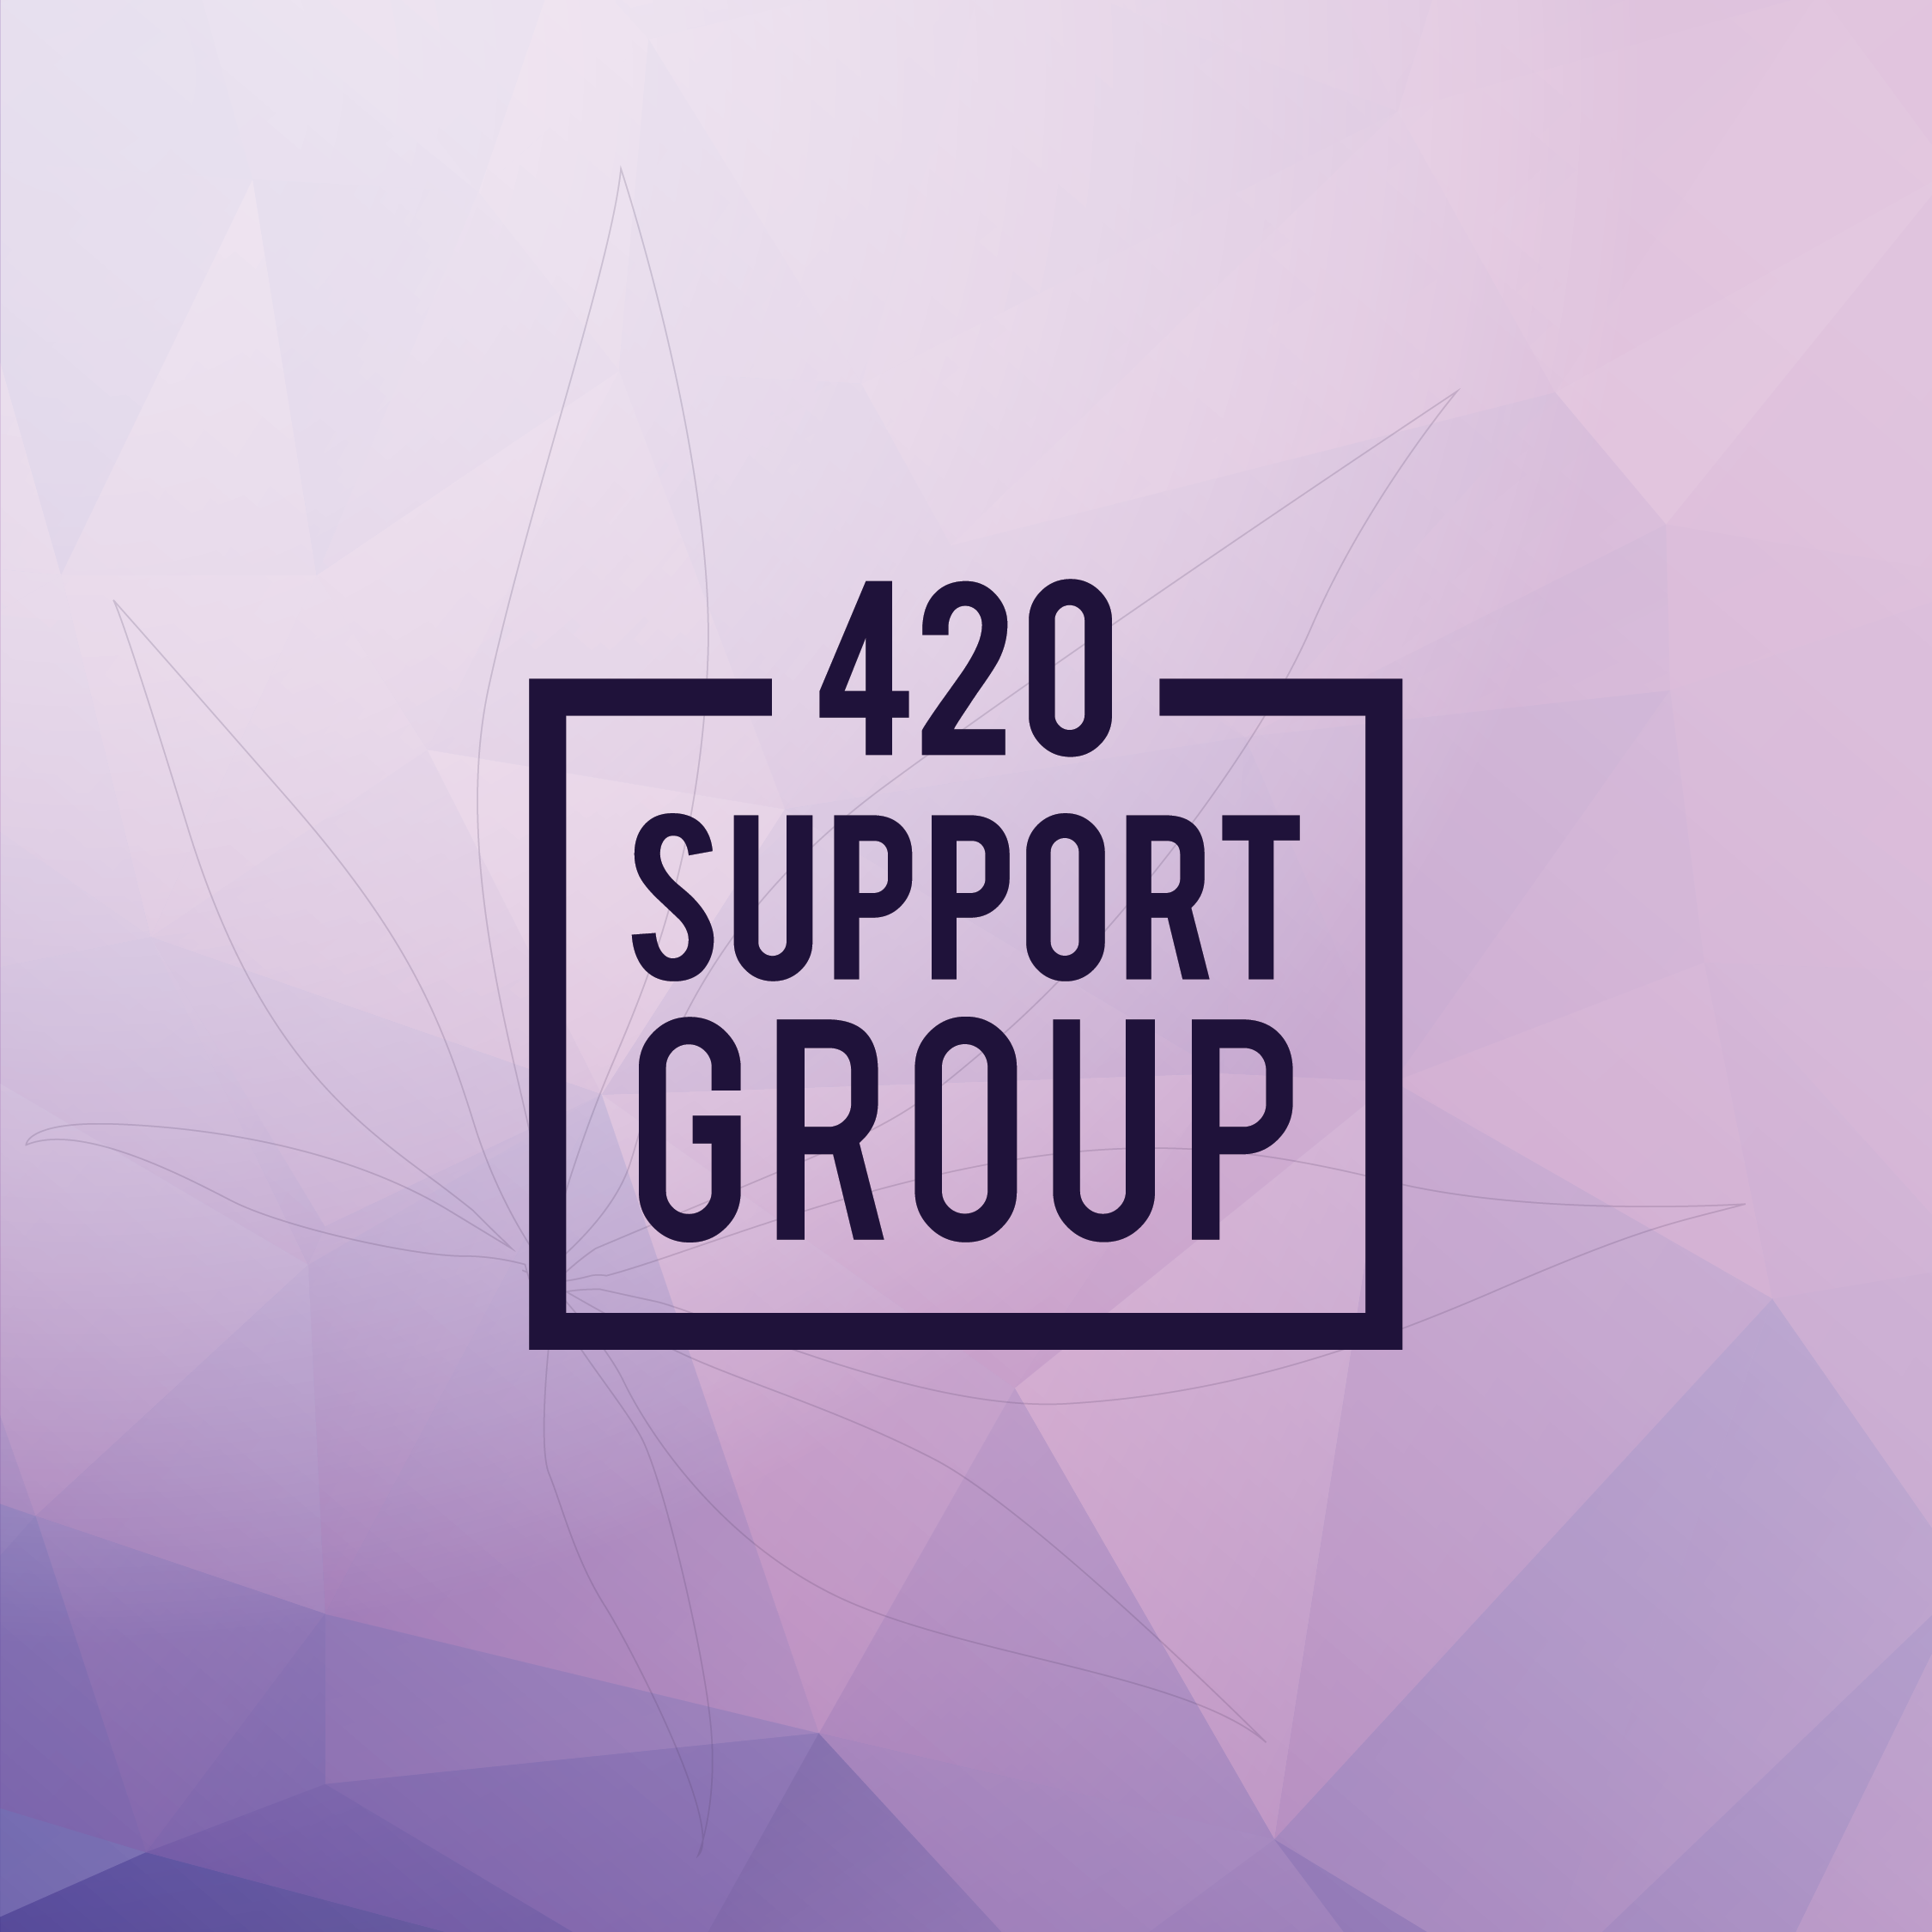 420 Support Group Patient Members Meeting